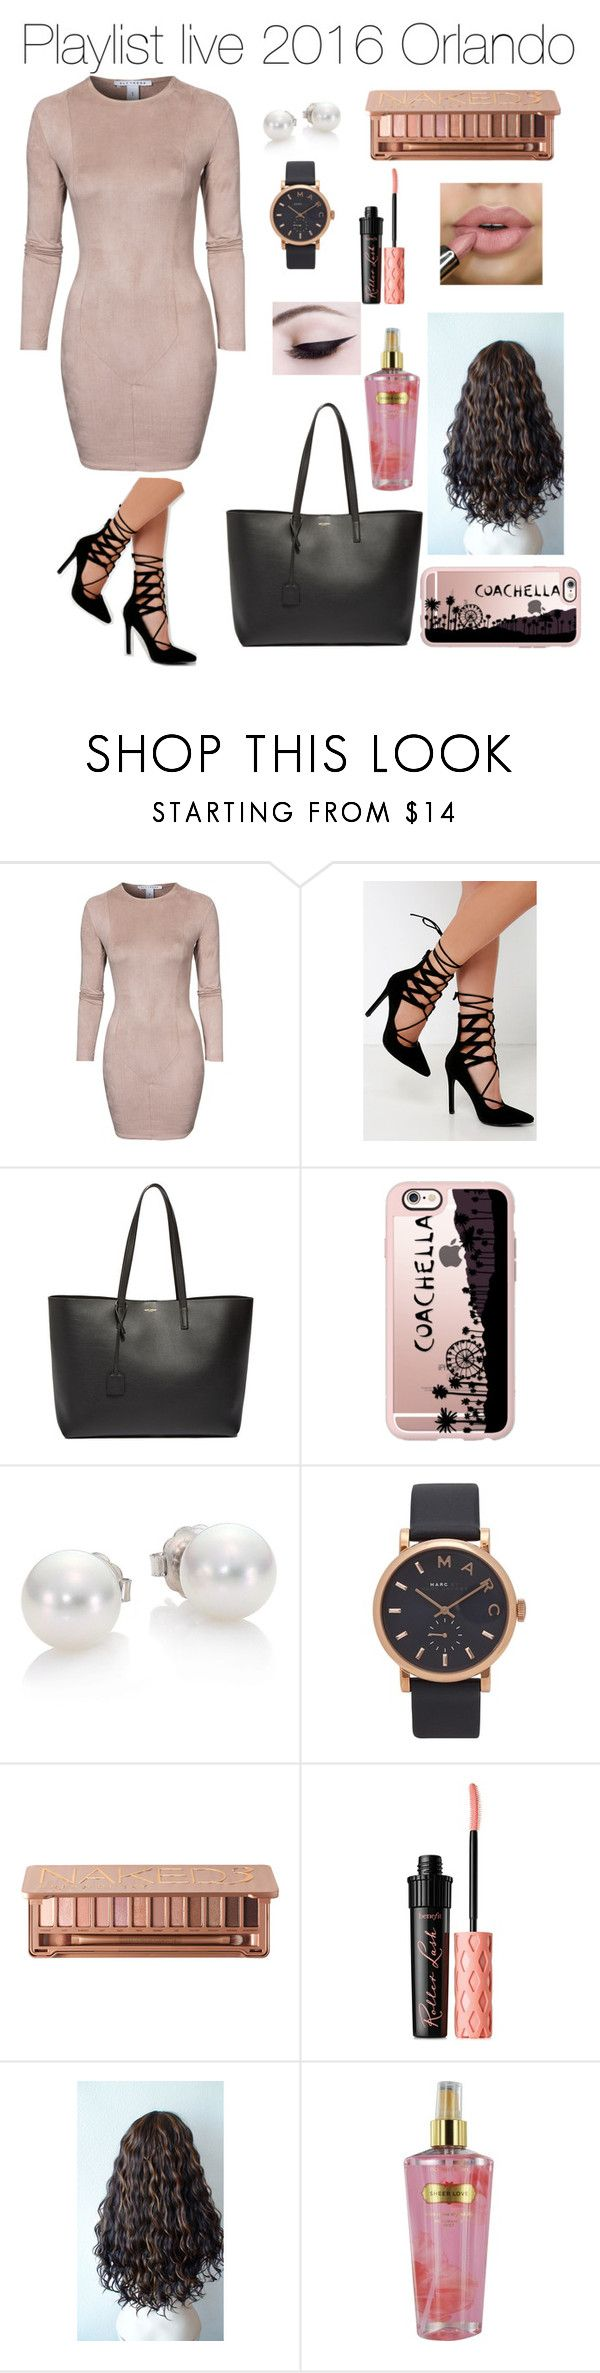 """""""playlist live 2016"""" by vasiliki5sos ❤ liked on Polyvore featuring NLY Trend, Lulu*s, Yves Saint Laurent, Casetify, Mikimoto, Marc Jacobs, Urban Decay, Benefit and Victoria's Secret"""